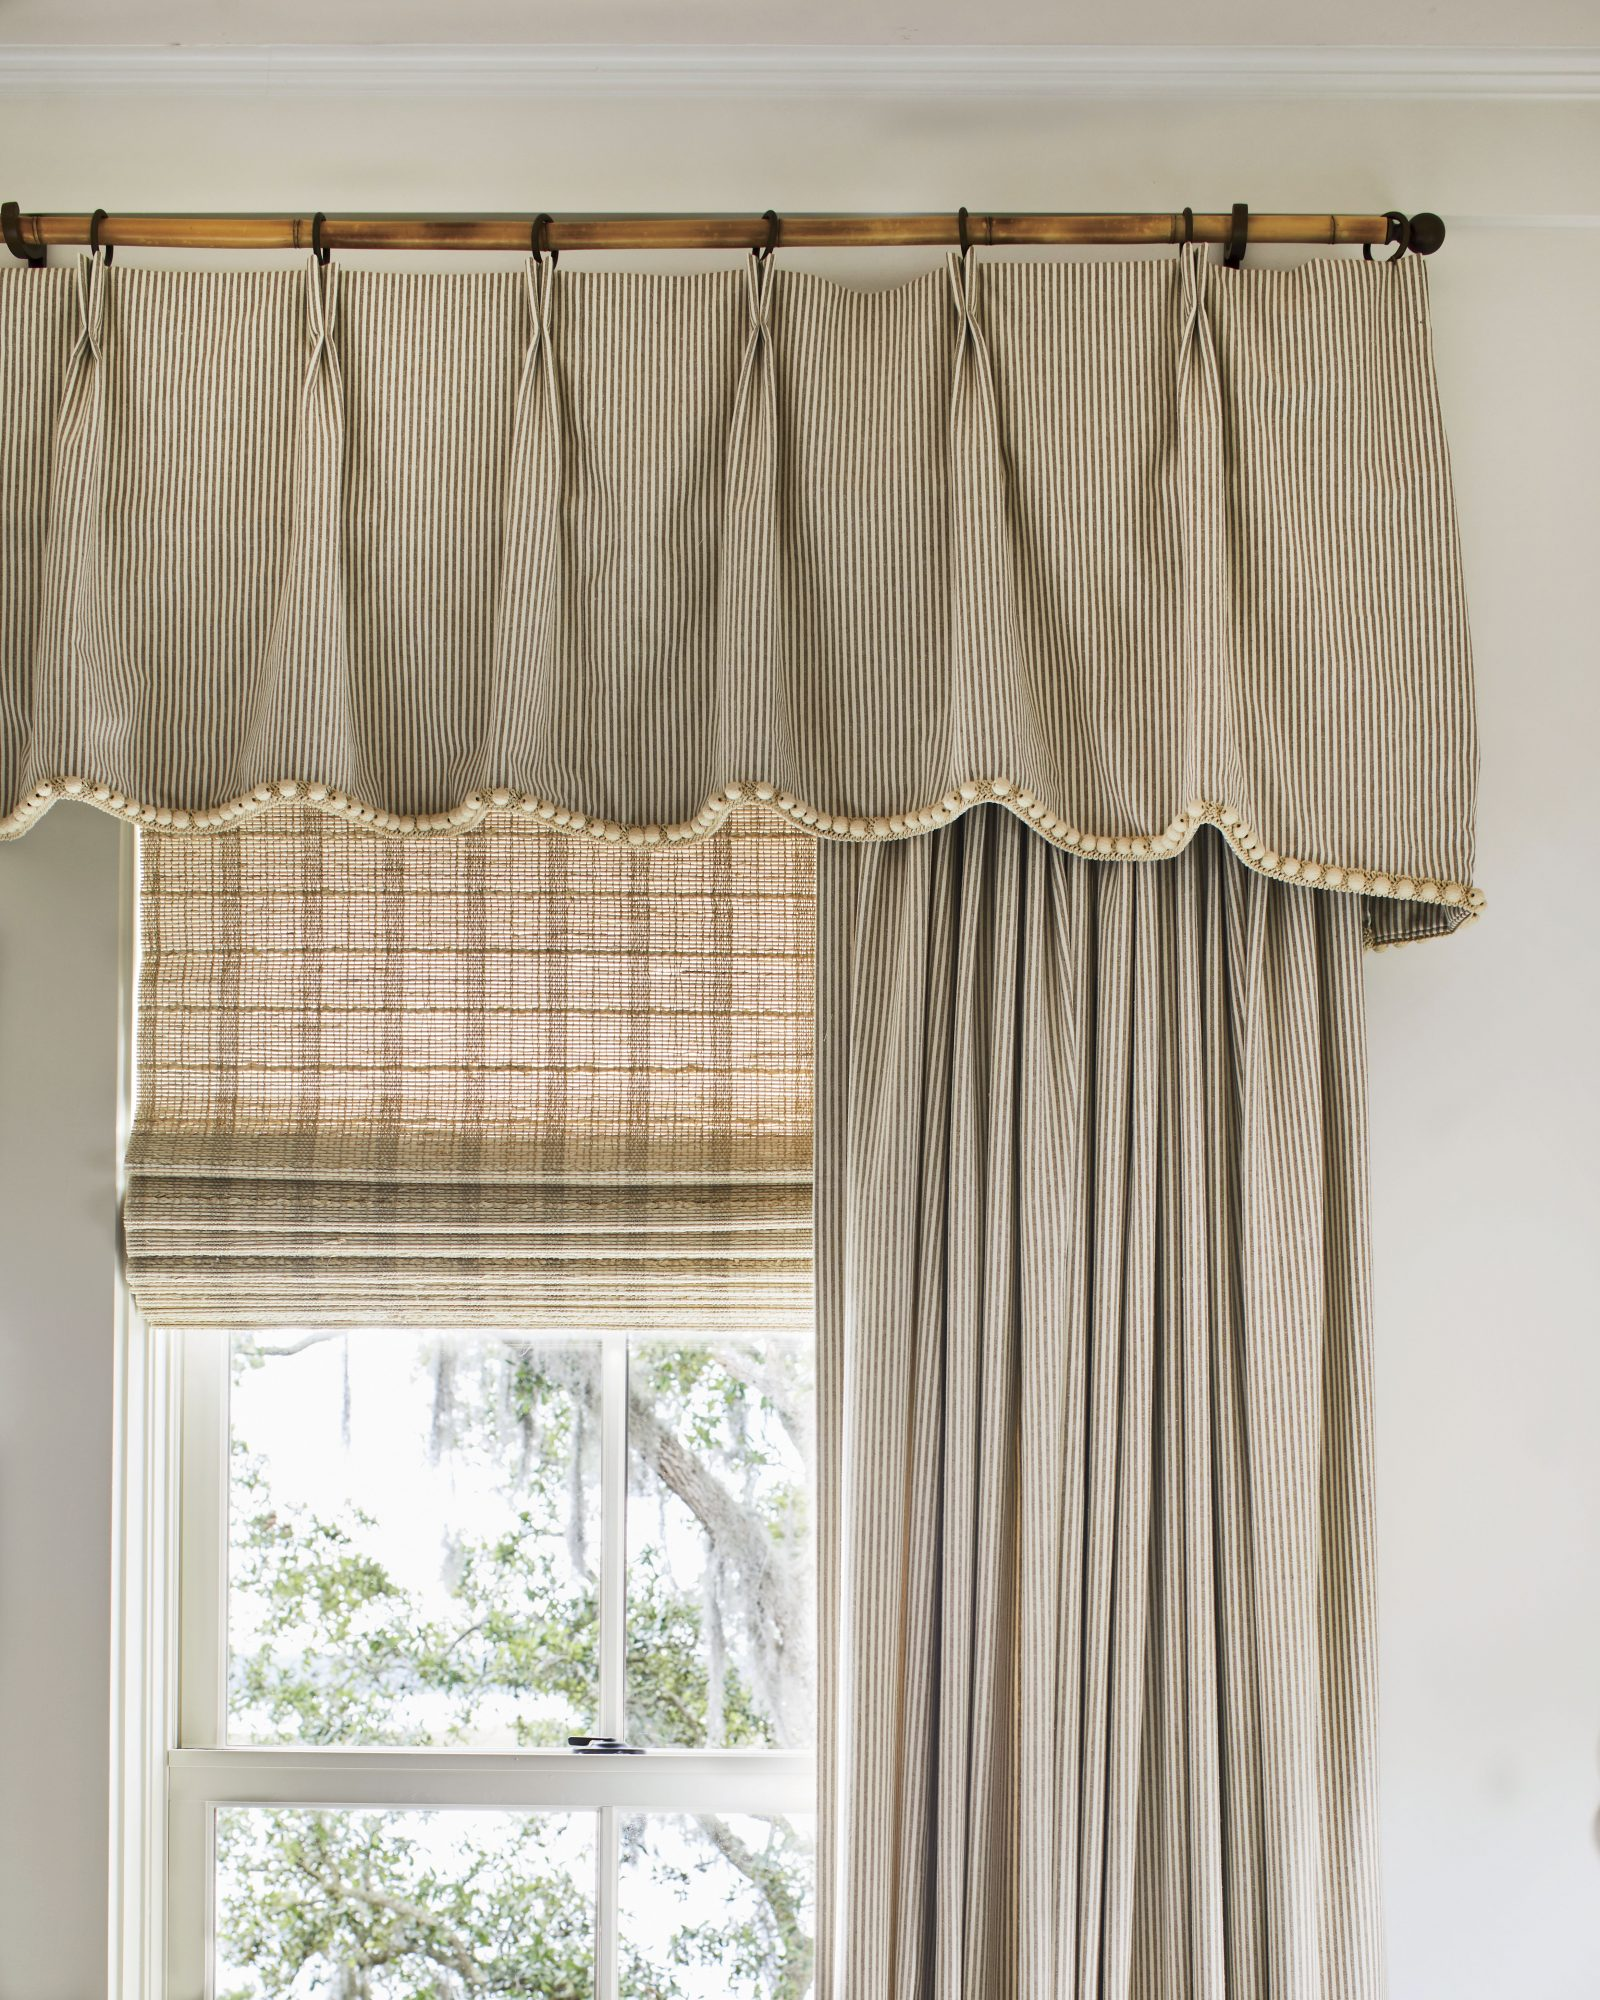 2019 Idea House Twin Bedroom Window Treatments